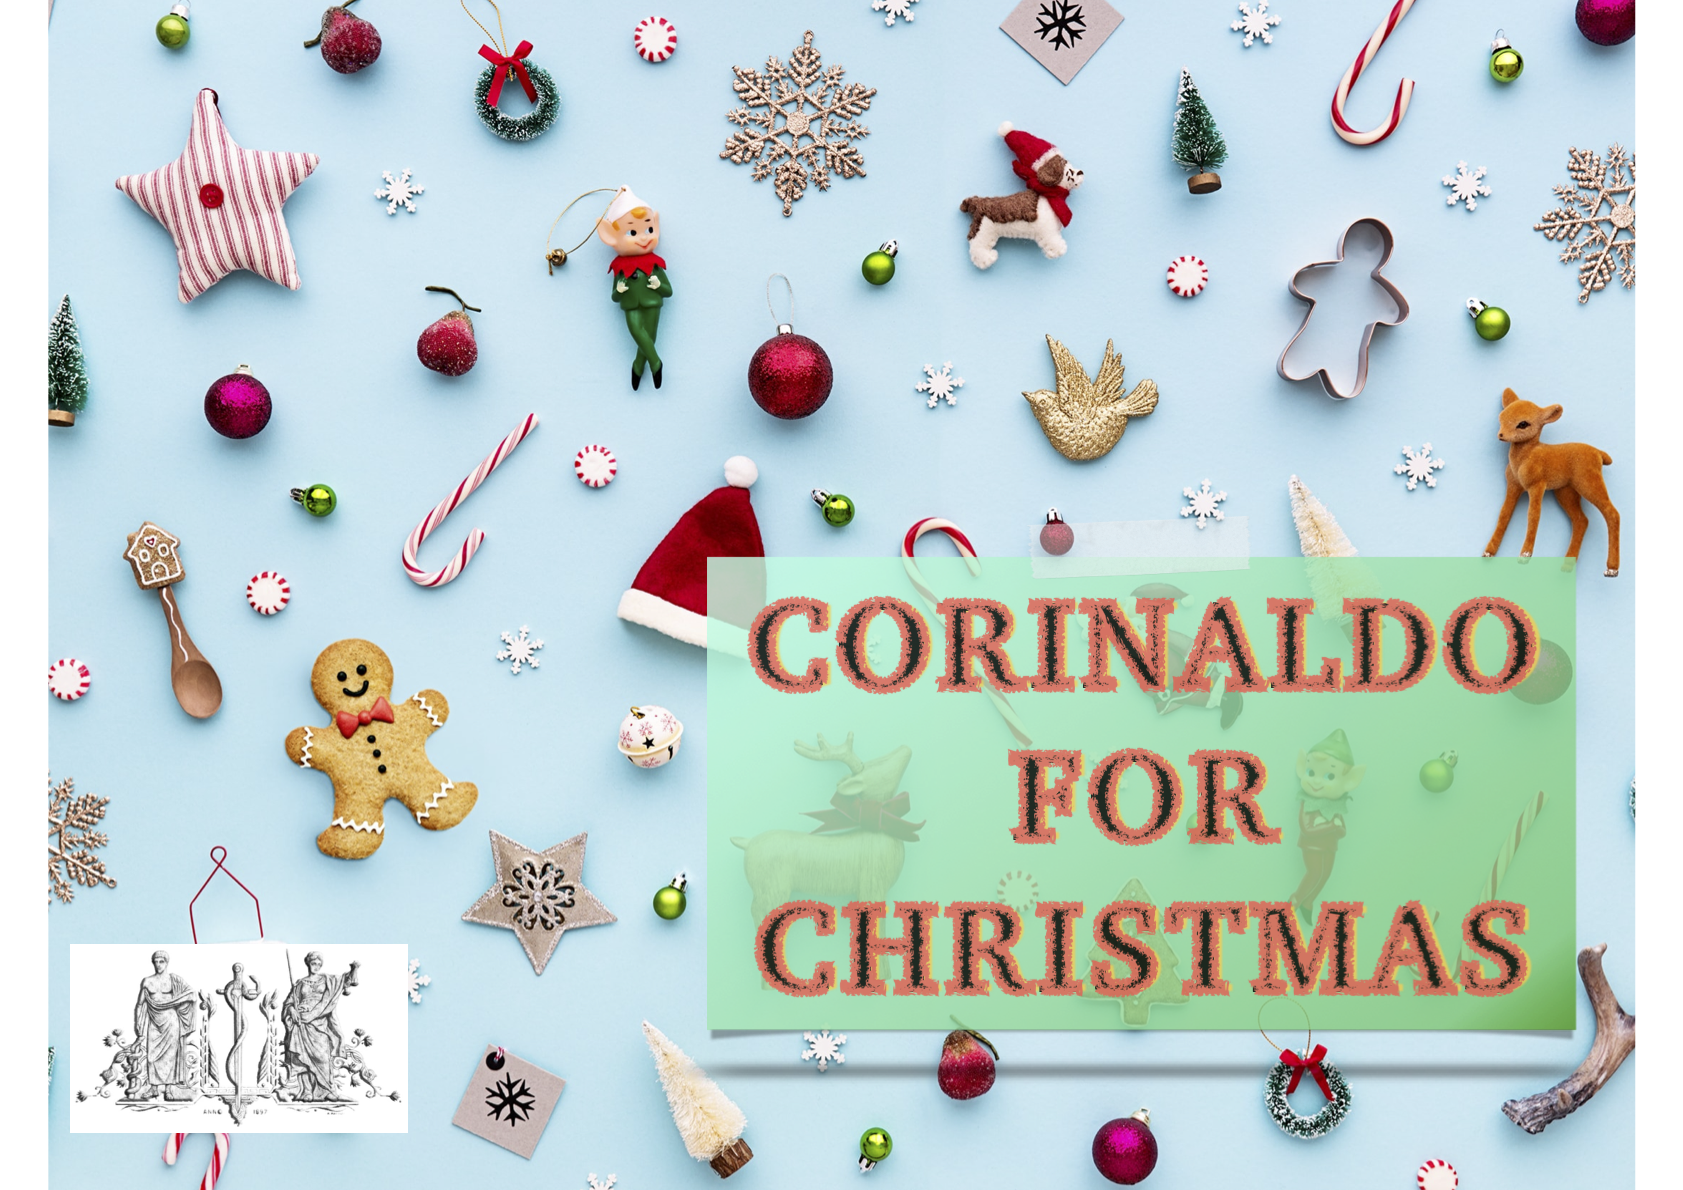 Corinaldo for Christmas